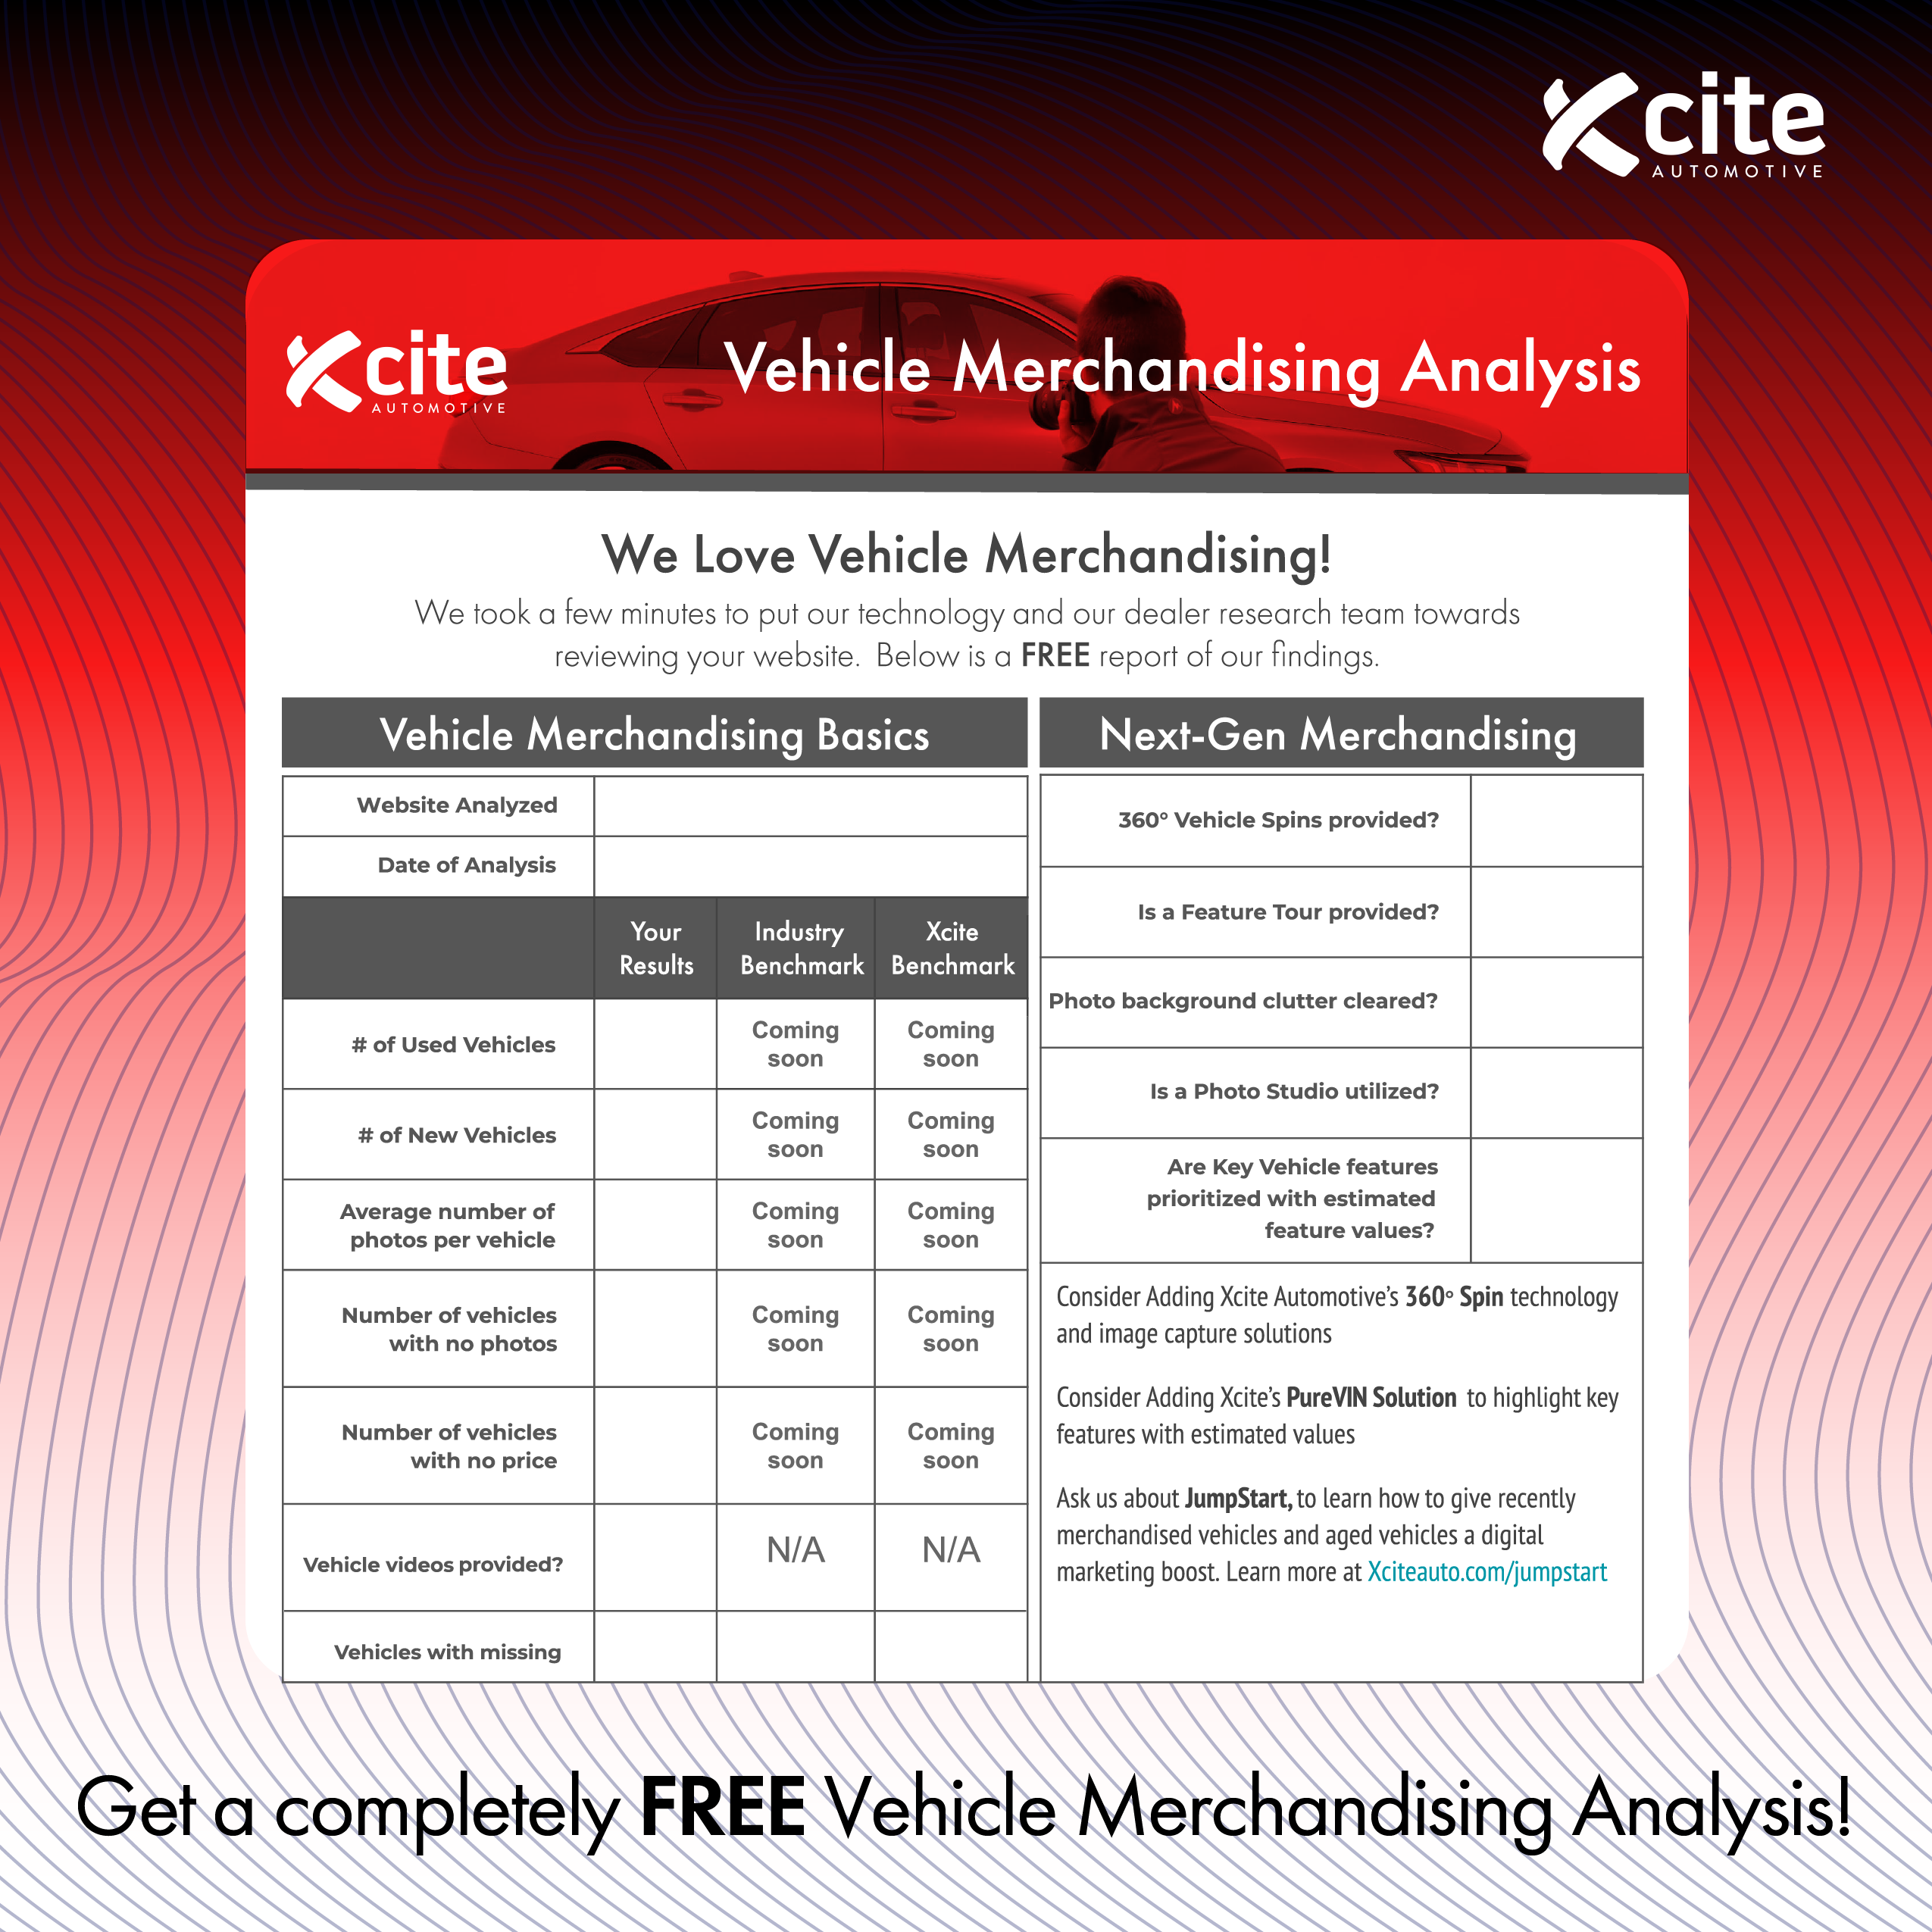 Vehicle Merchandising Analysis